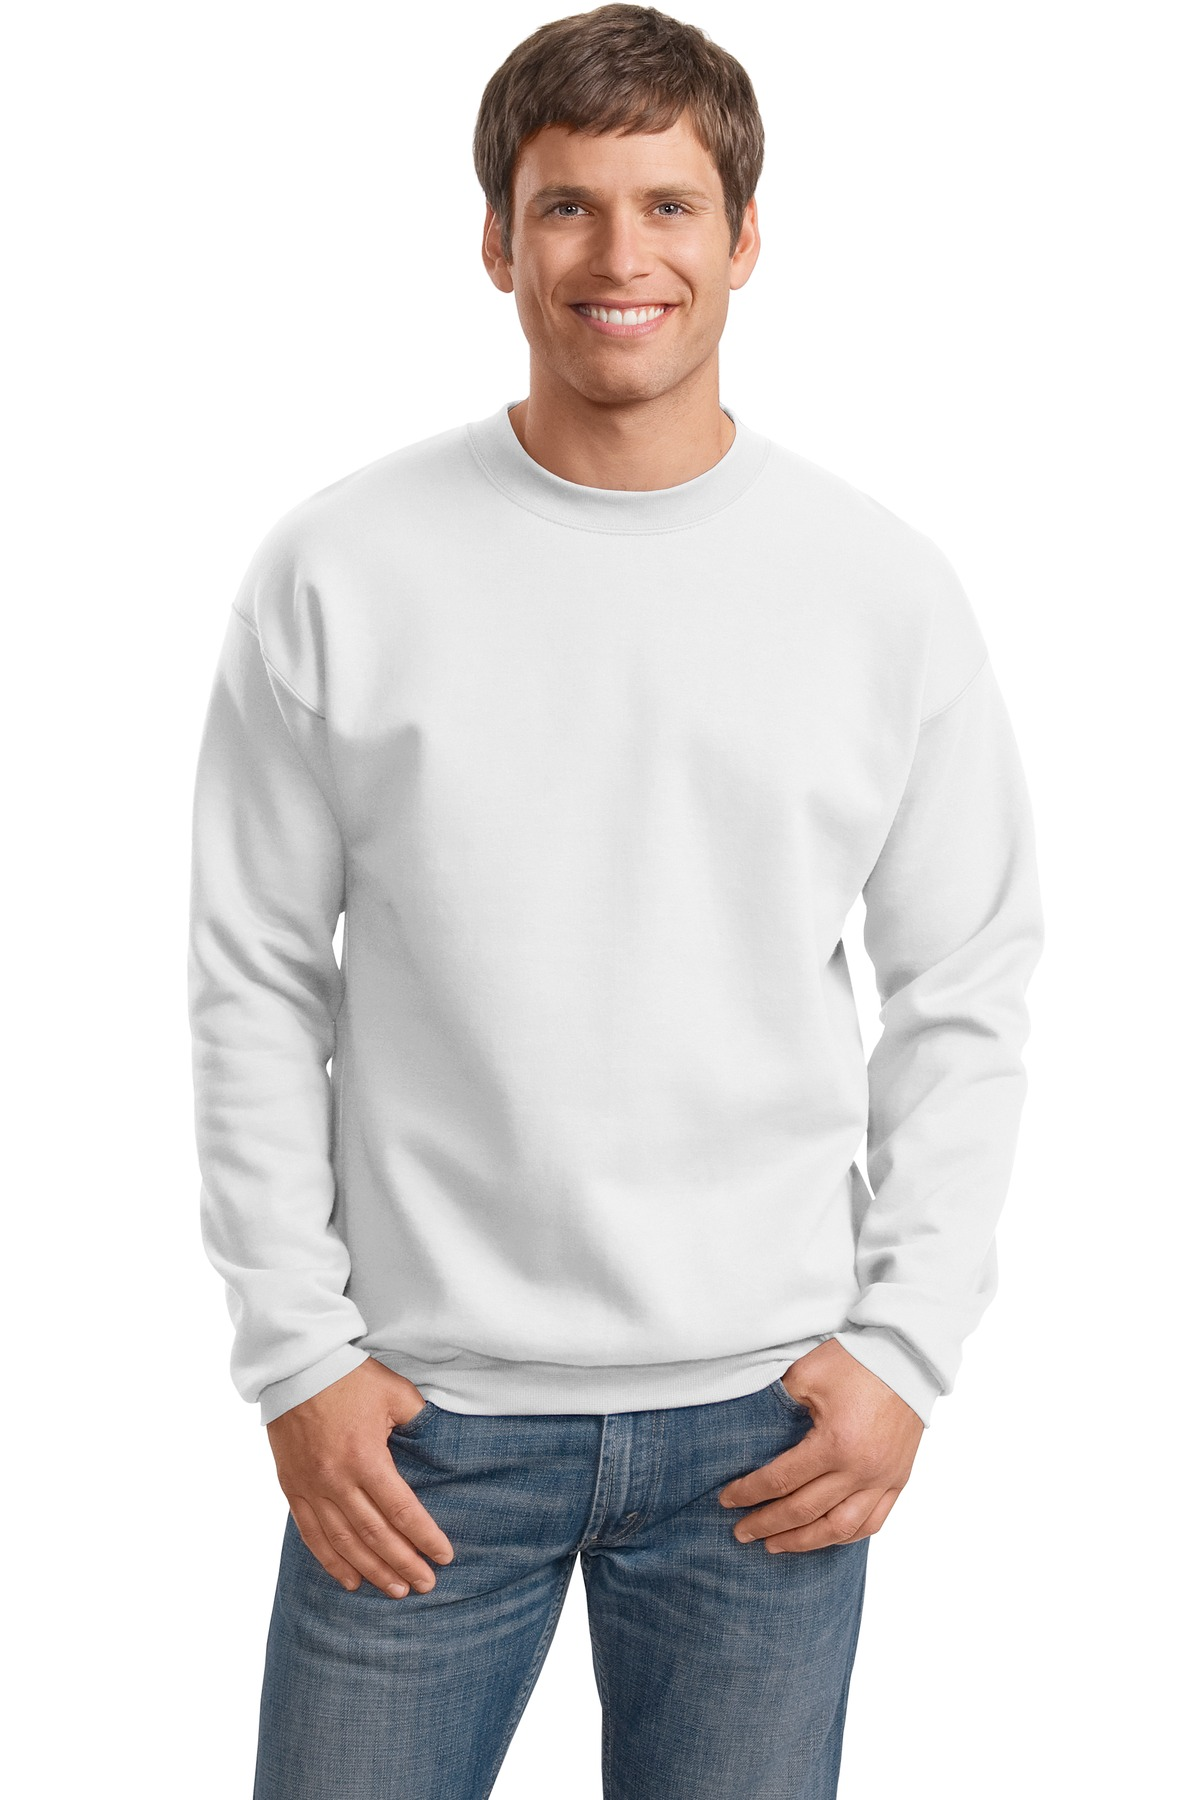 Hanes Men's Ultimate Cotton Heavyweight Fleece Sweatshirt ...